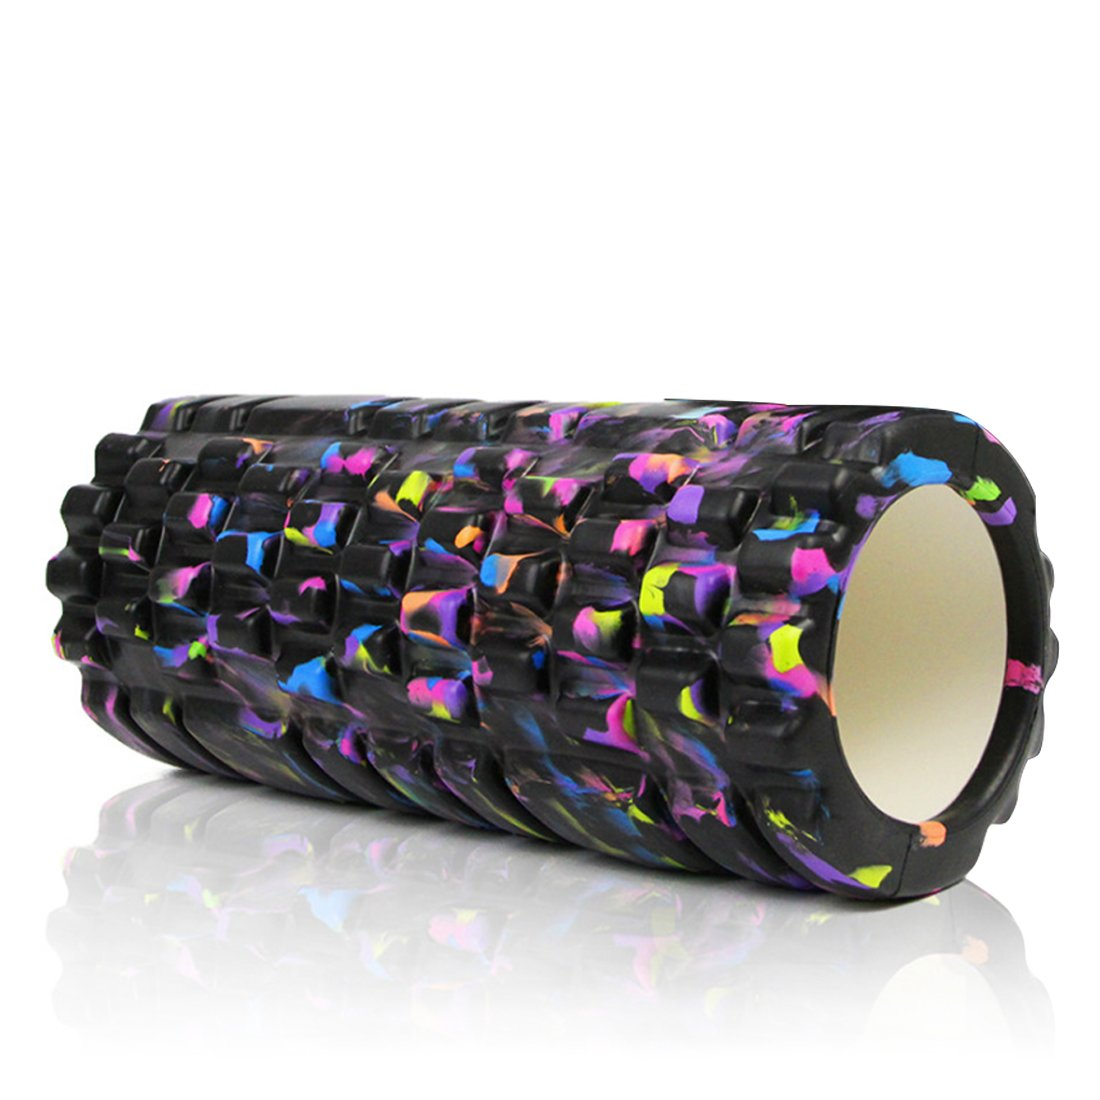 Buy foam roll physical therapy - Amazon Com 5billion Foam Roller Galaxy 13 Exercise Roller Massage For Physical Therapy Deep Tissue Massage Sports Outdoors